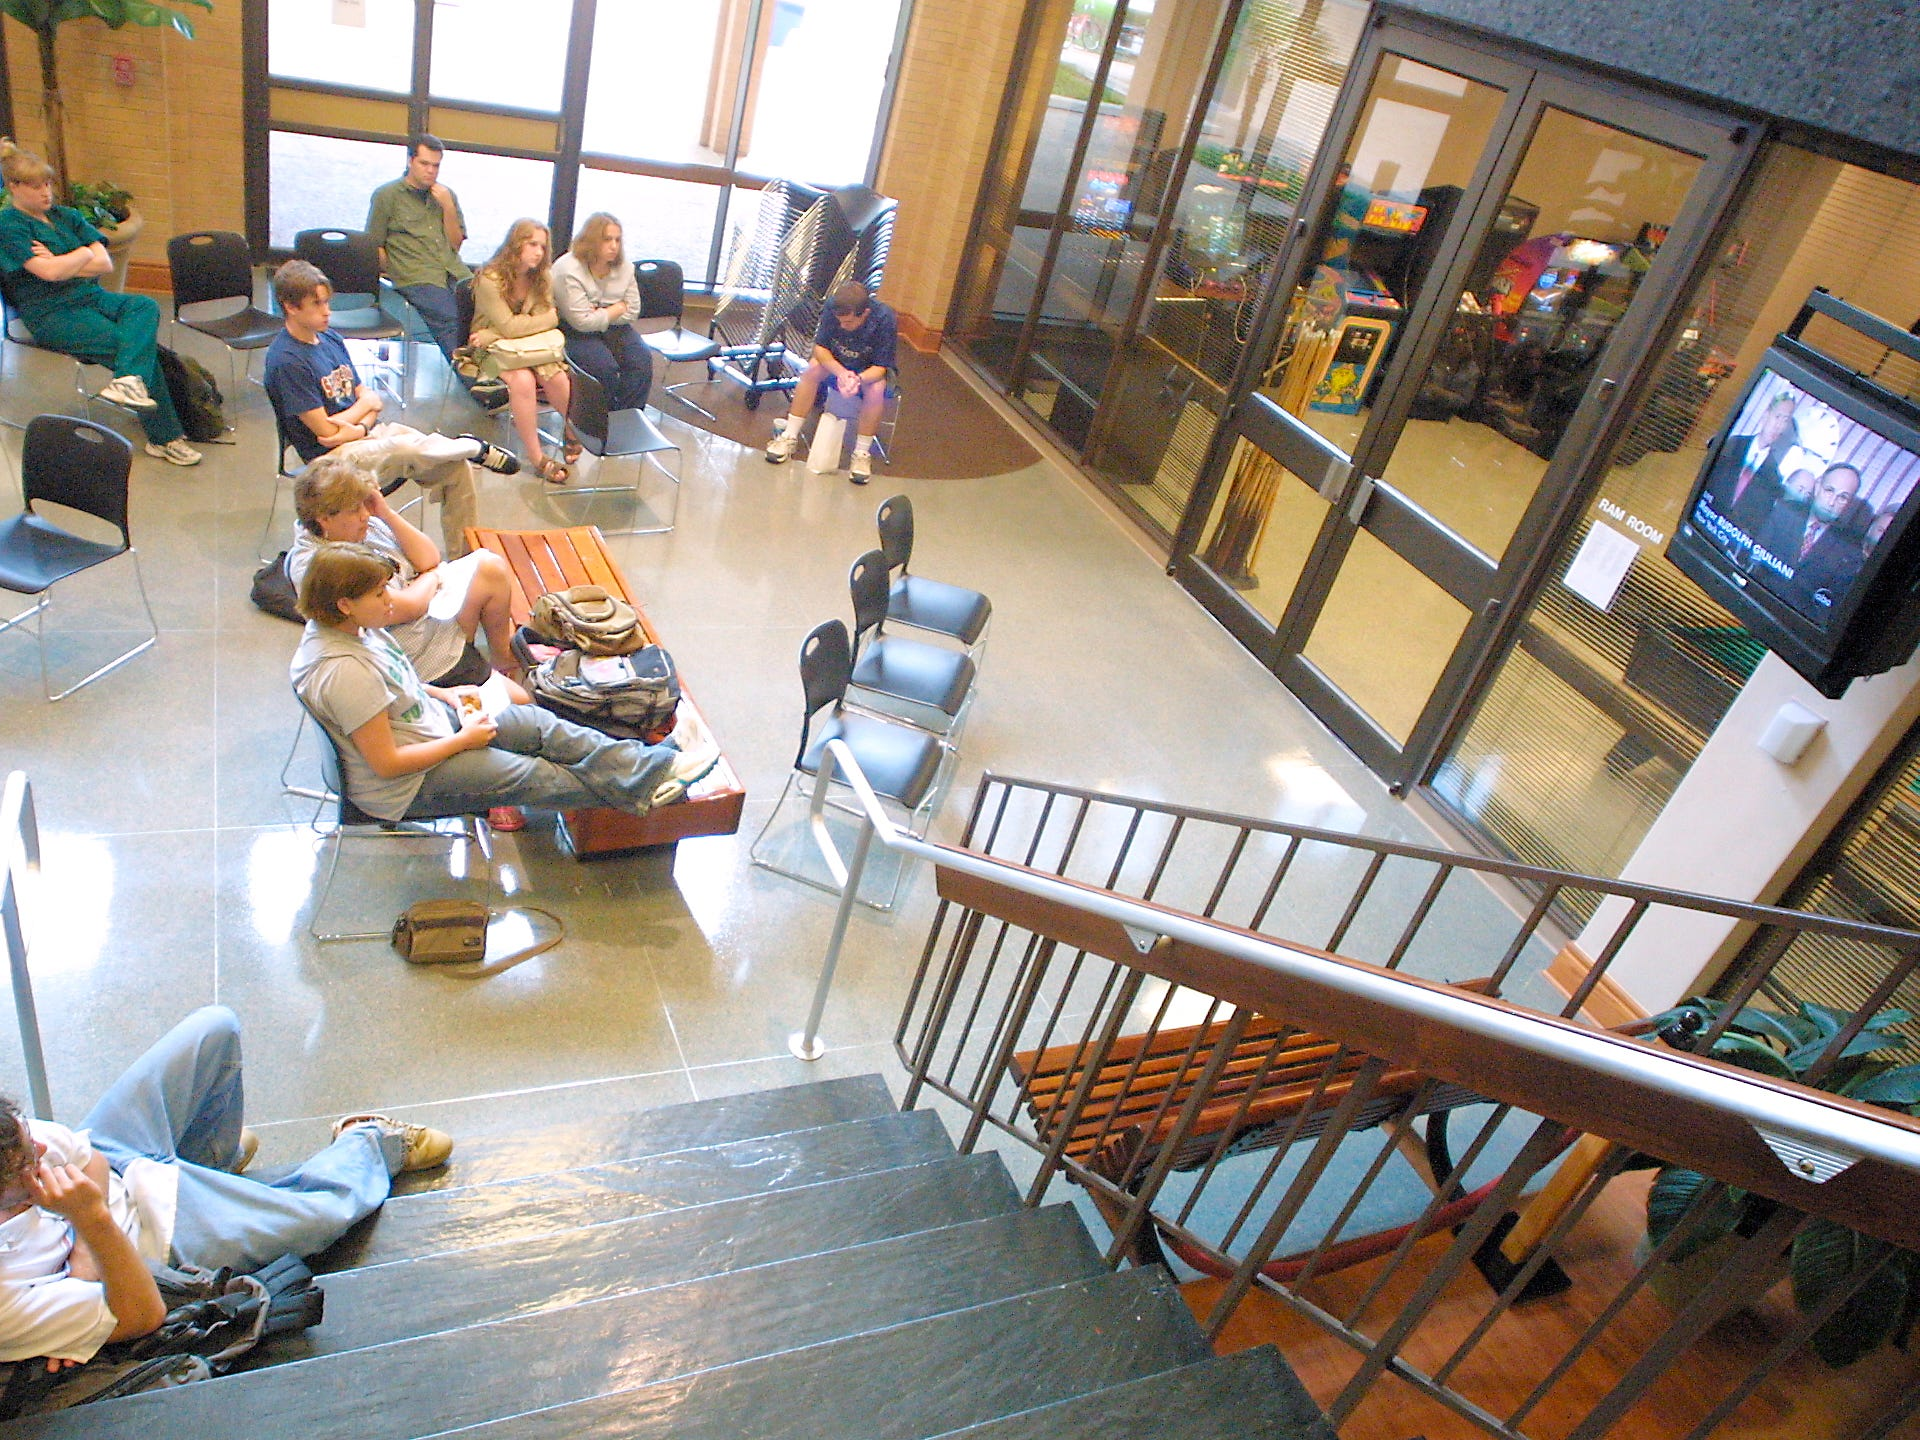 Angelo State University students sit in the Houston Harte University Center, watching a news conference with New York City officials concerning the terrorists attacks of Sept. 11, 2001.